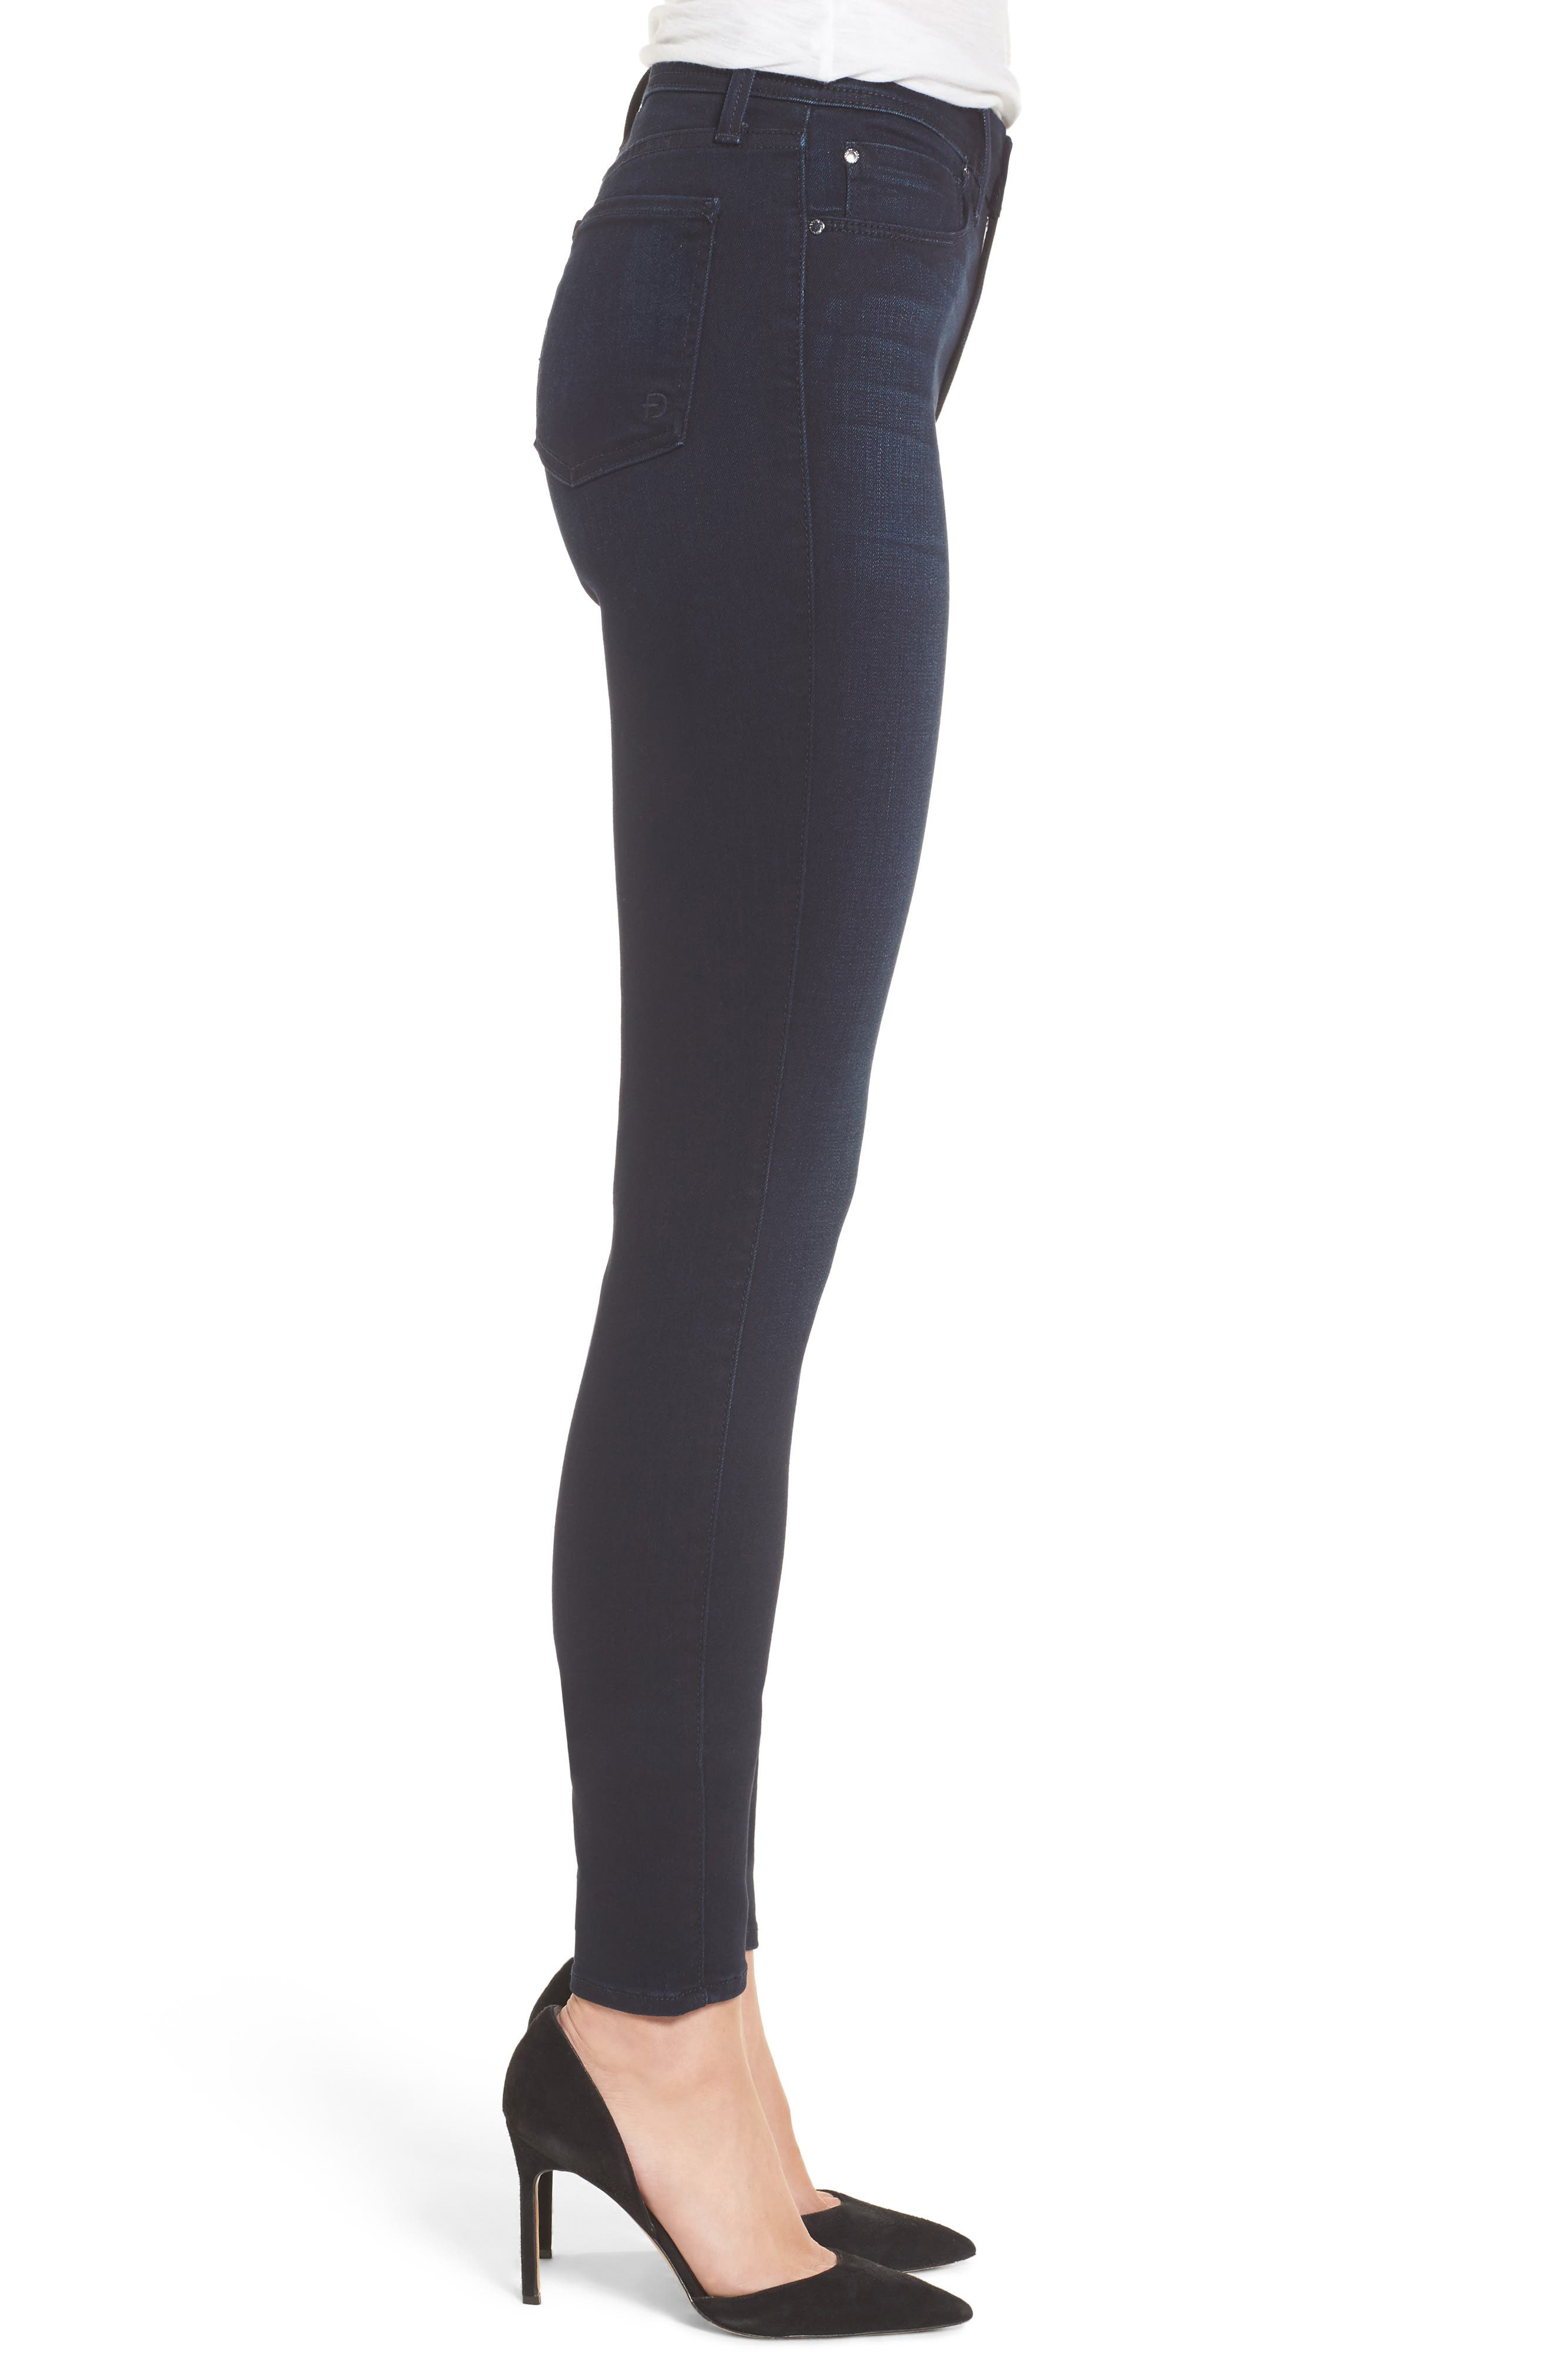 Fidelity Jeans Belvedere Skinny Jeans,                             Alternate thumbnail 3, color,                             Sapphire